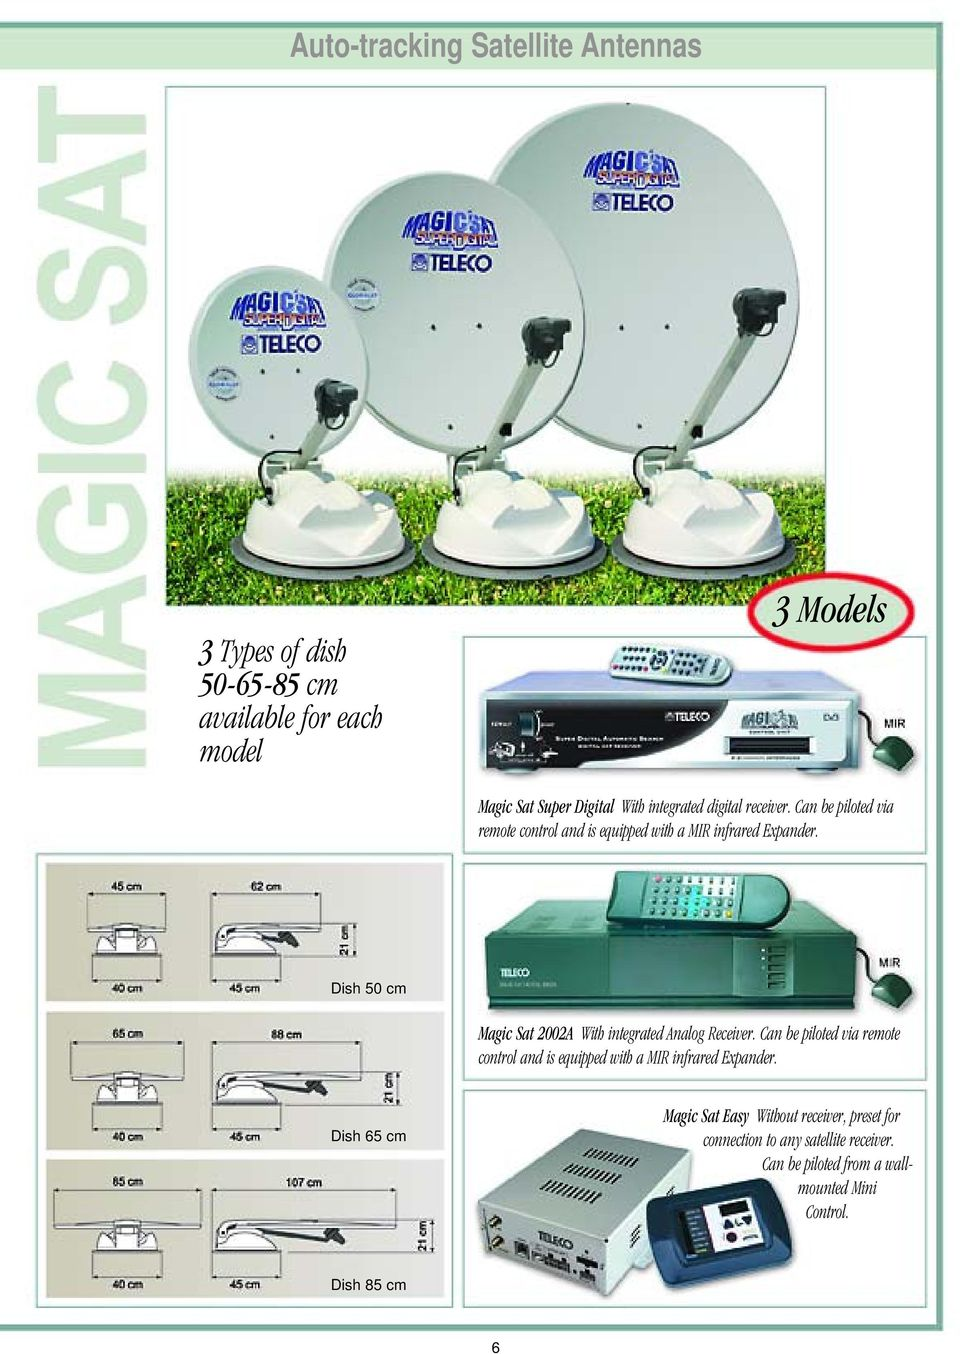 Teleco Technical Data Pdf Wiring Diagram 50 Amp For Rv Also Dish Hopper Cm Magic Sat 2002a With Integrated Analog Receiver